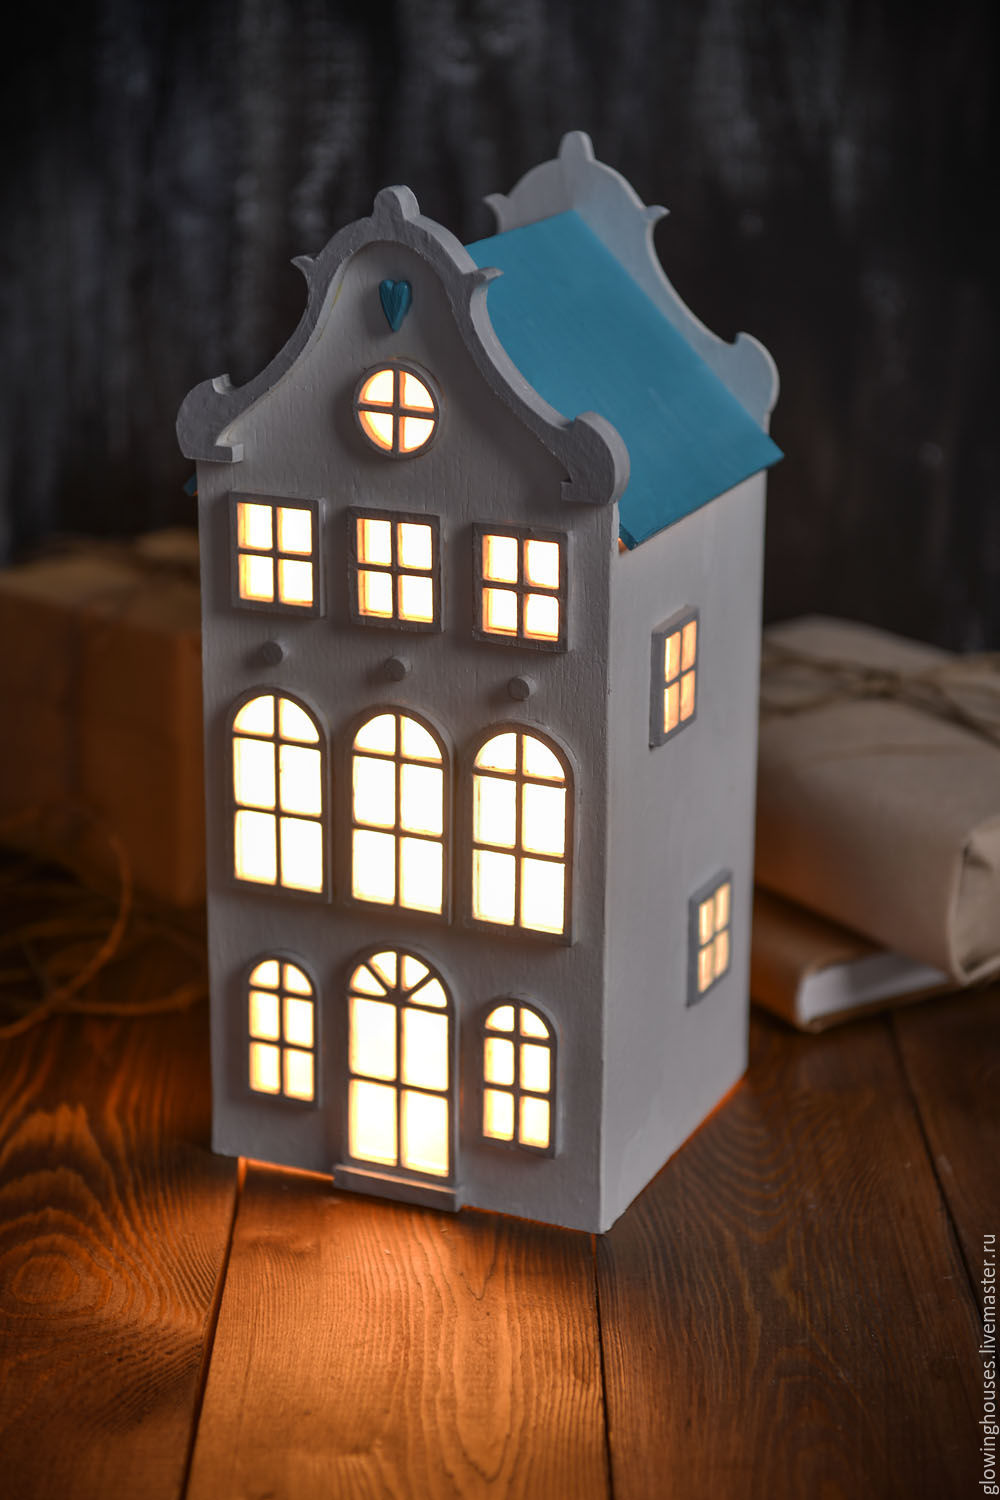 Lamps Handmade. Dutch Lamp   House With Turquoise Roof. Night Light. Light  House ...